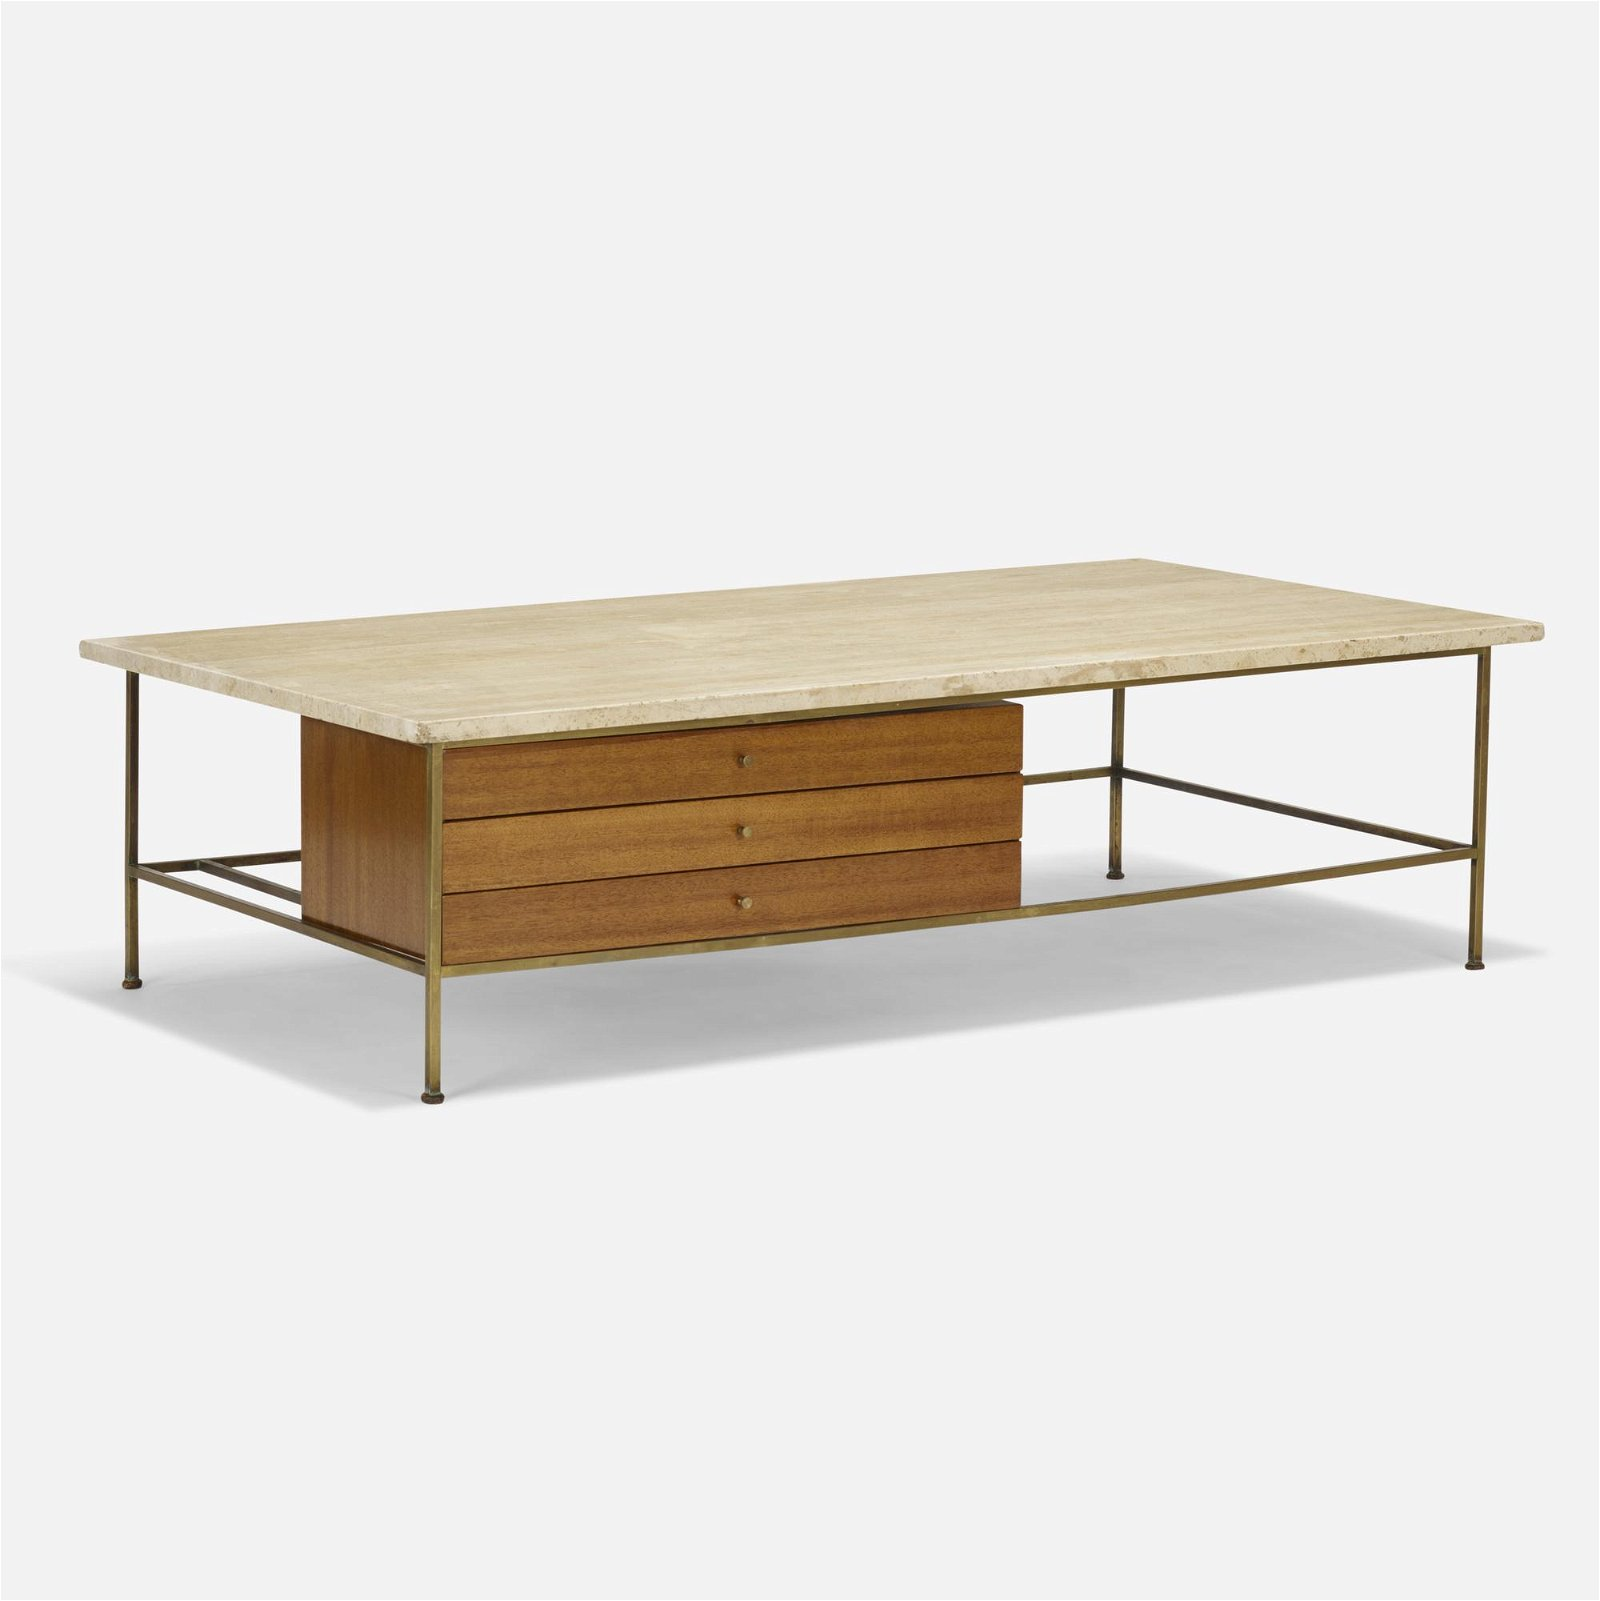 Paul McCobb, Irwin Collection coffee table, model 8705